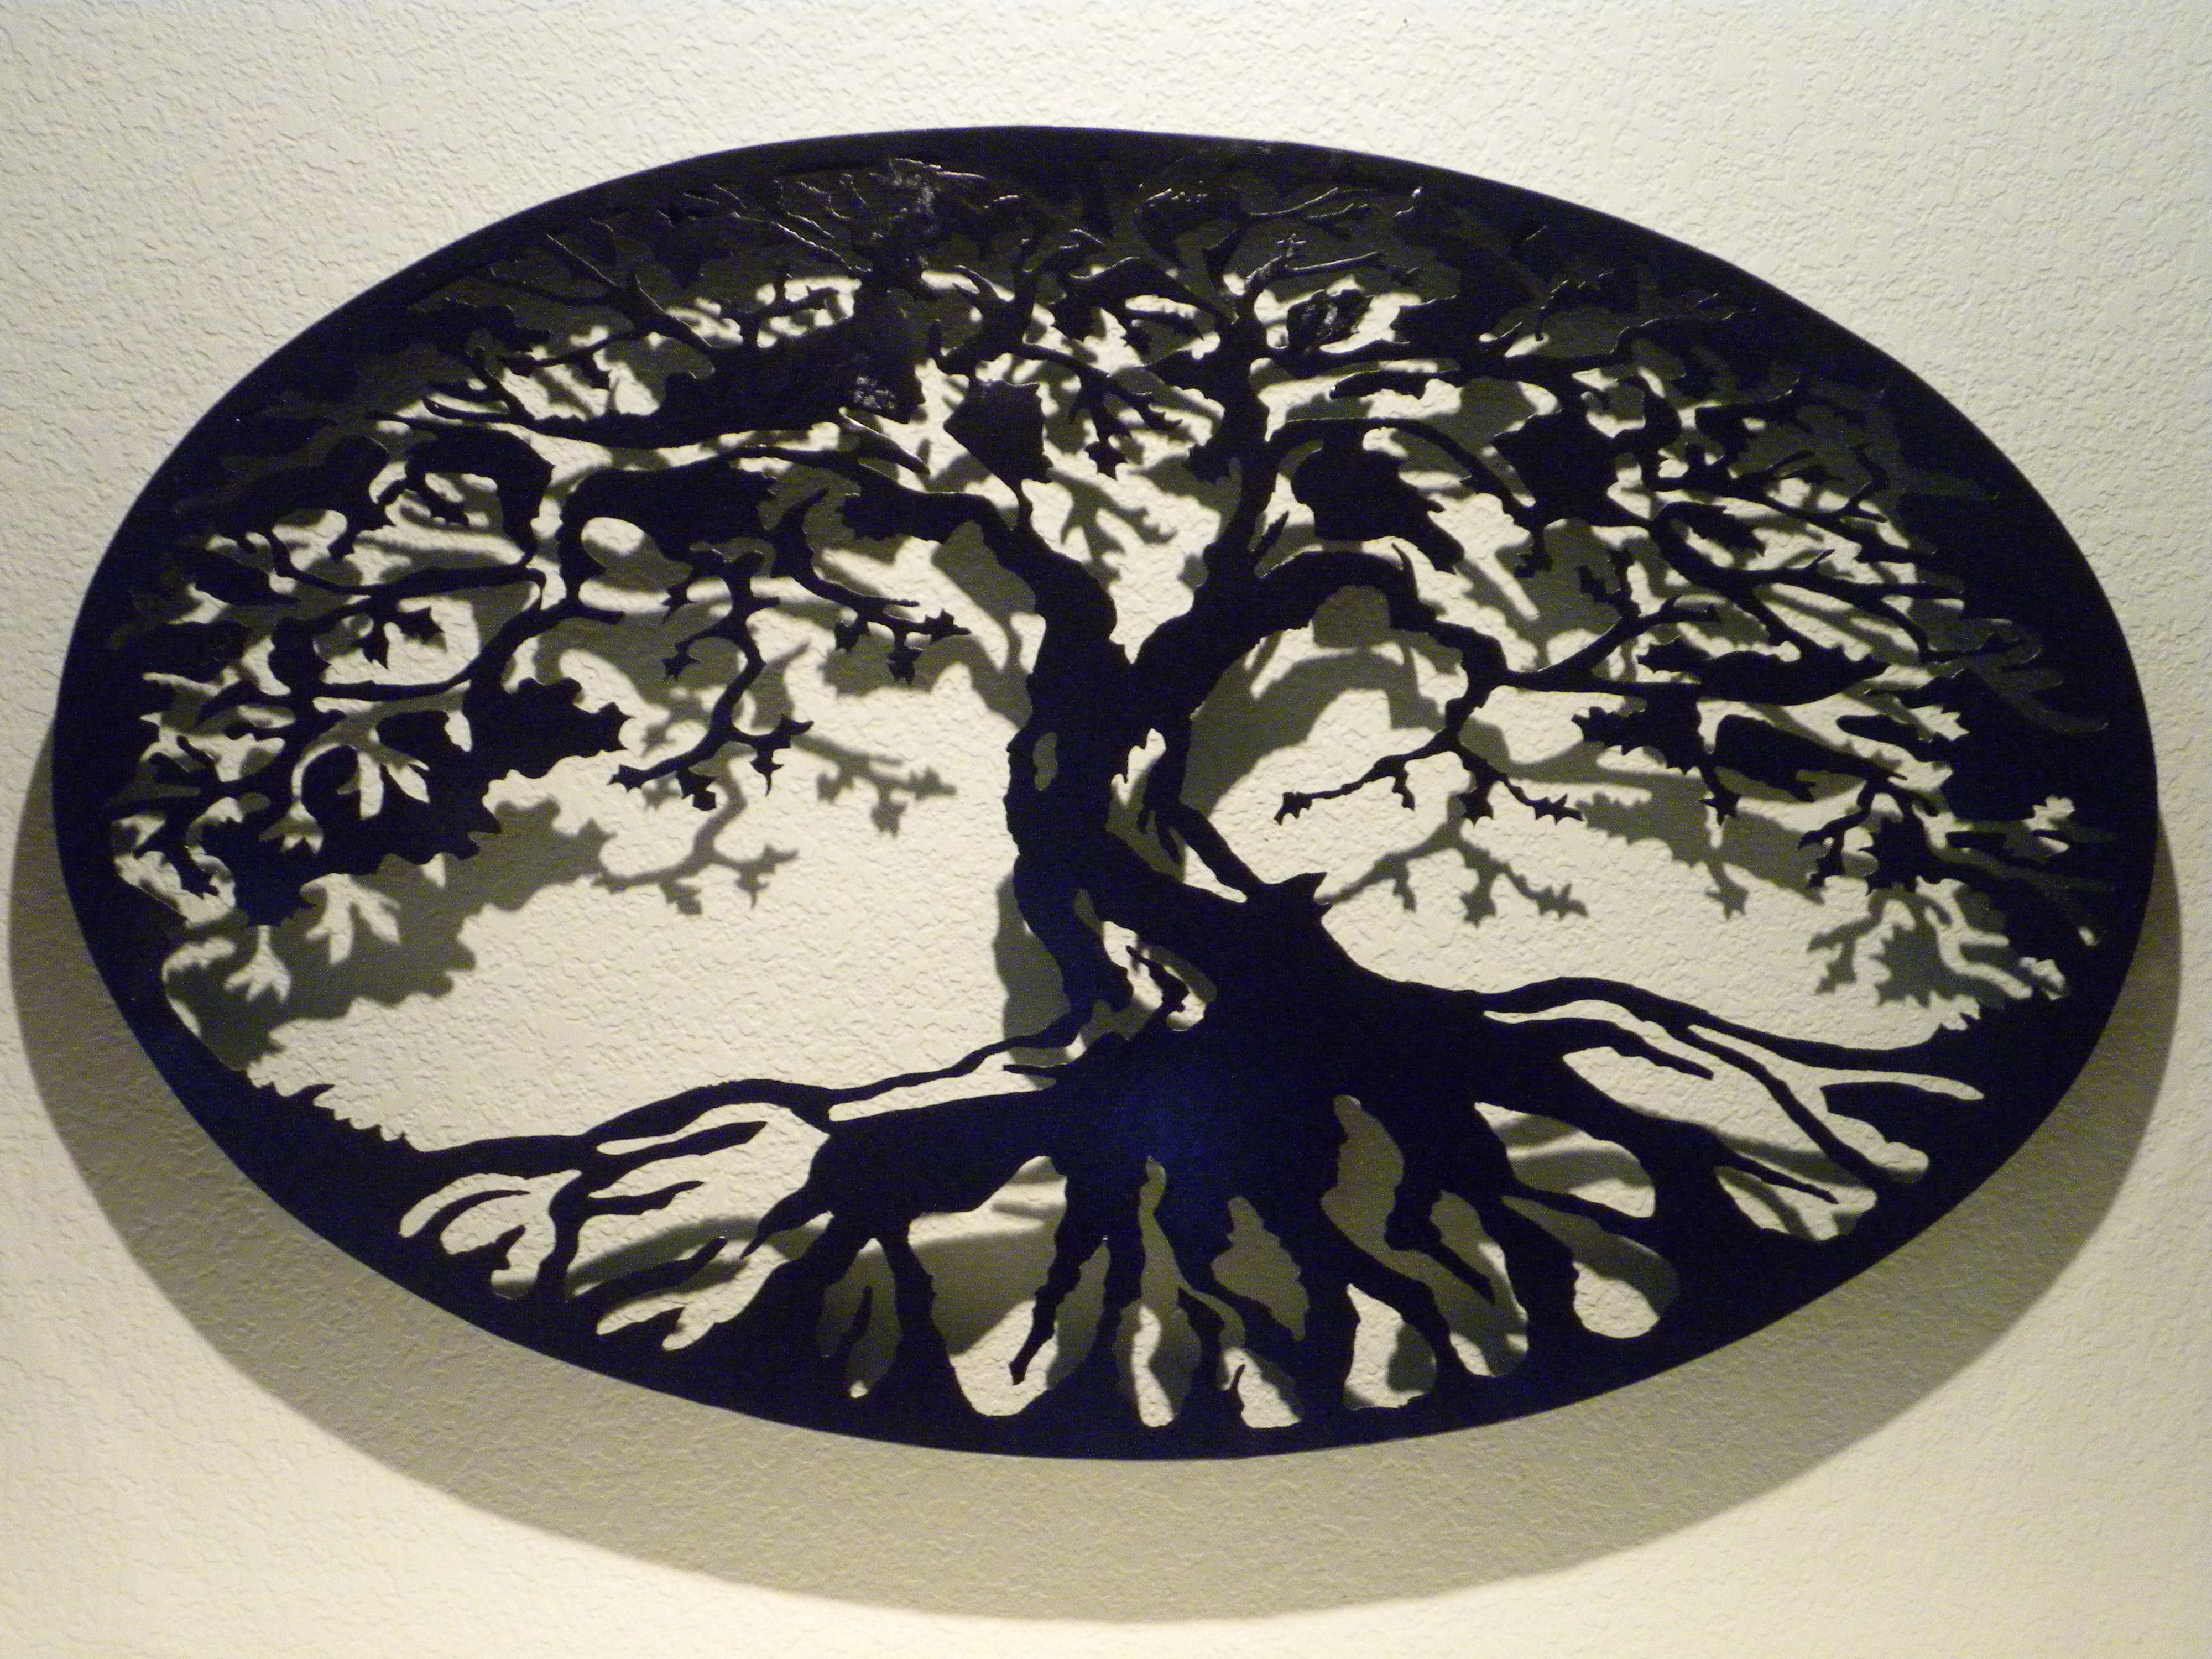 Tree Of Life Wall Art In Well Known Buy A Custom Oval Tree Of Life Metal Wall Art, Made To Order From (Gallery 3 of 15)